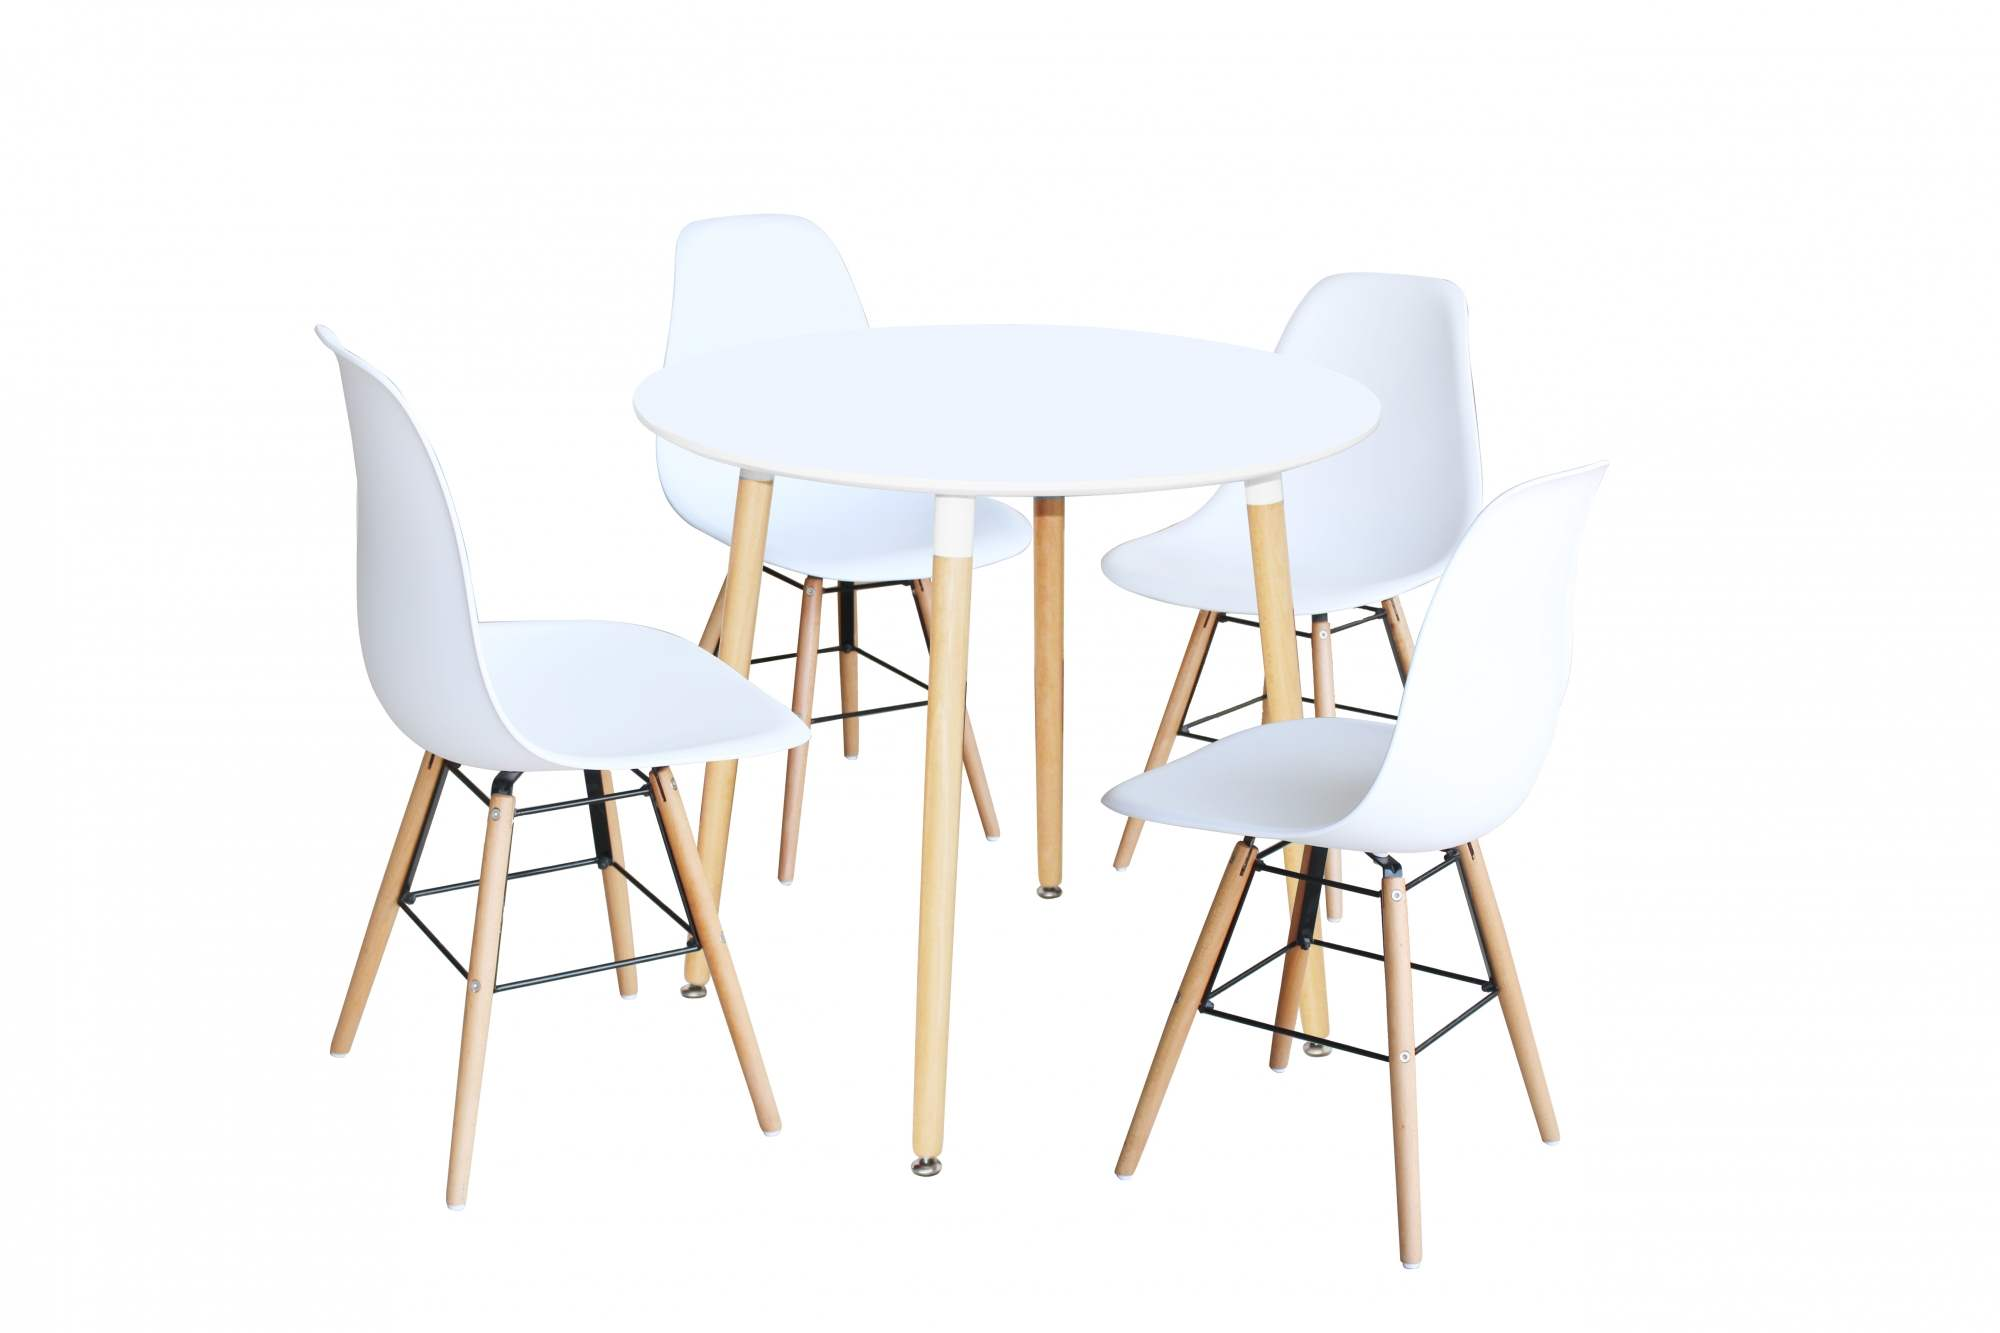 Chaises Blanches Deco In Paris 8 Ensemble Table Ronde Rimma 4 Chaise Blanches